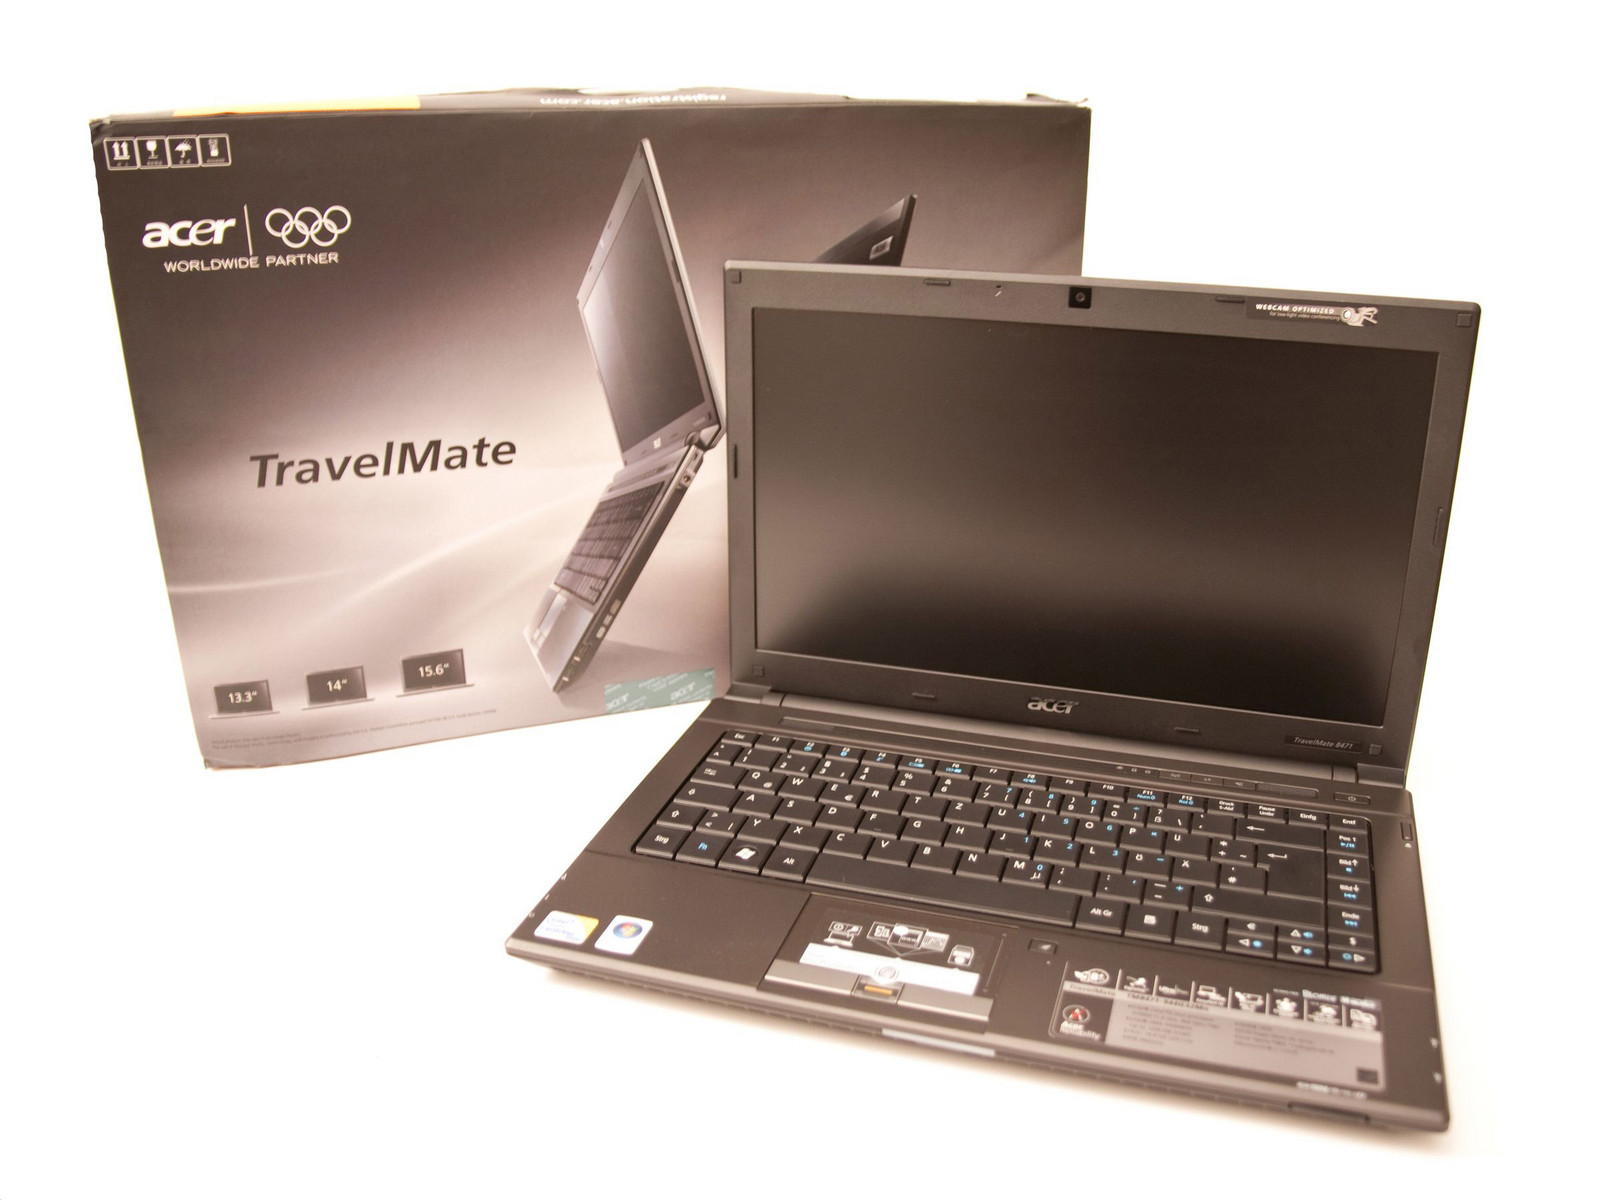 Acer TravelMate 8471G VGA Driver for Windows 7